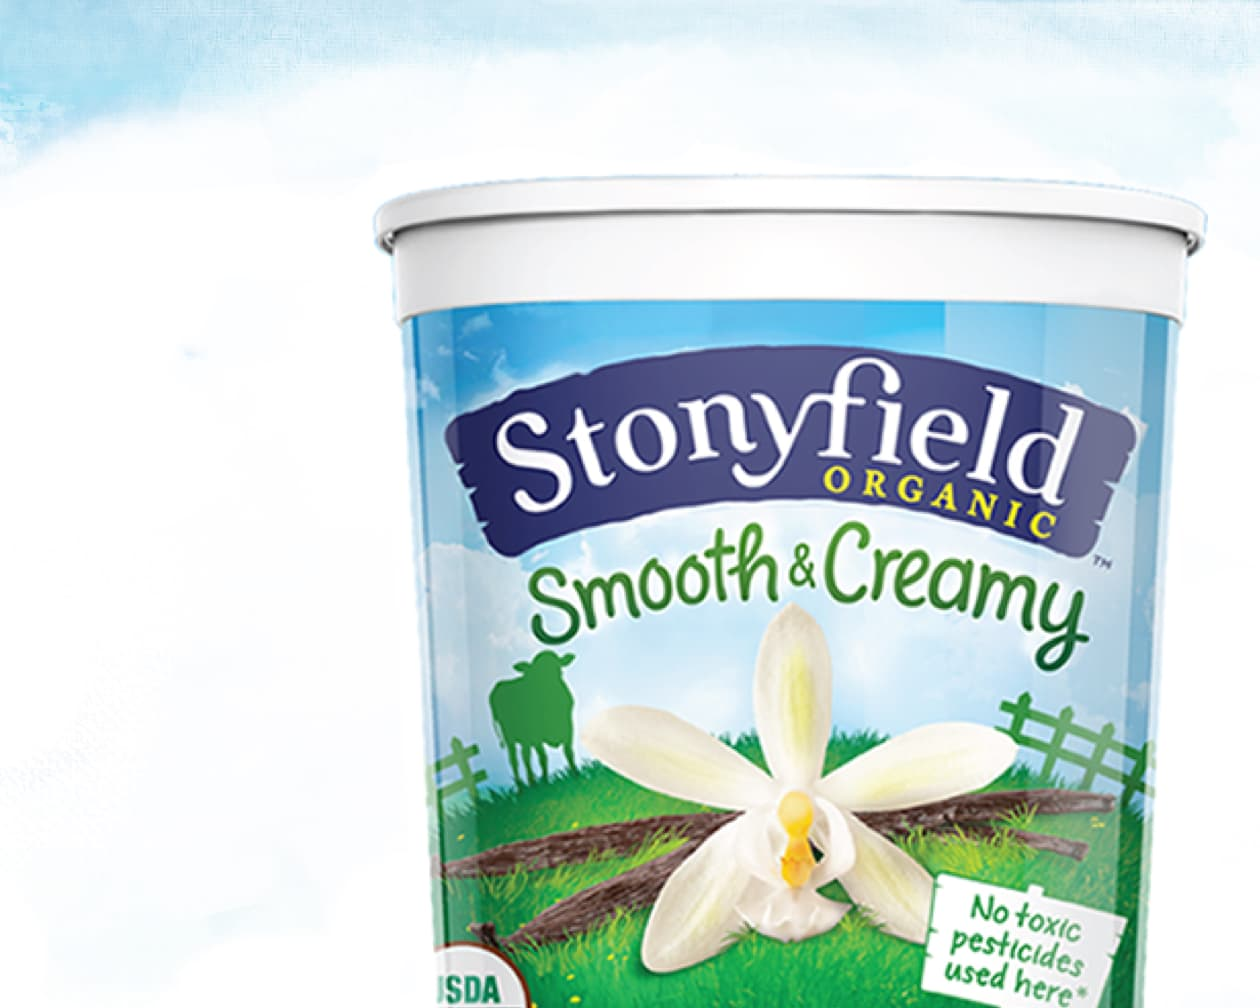 King Design Stonyfield Organic Yogurt Case Study